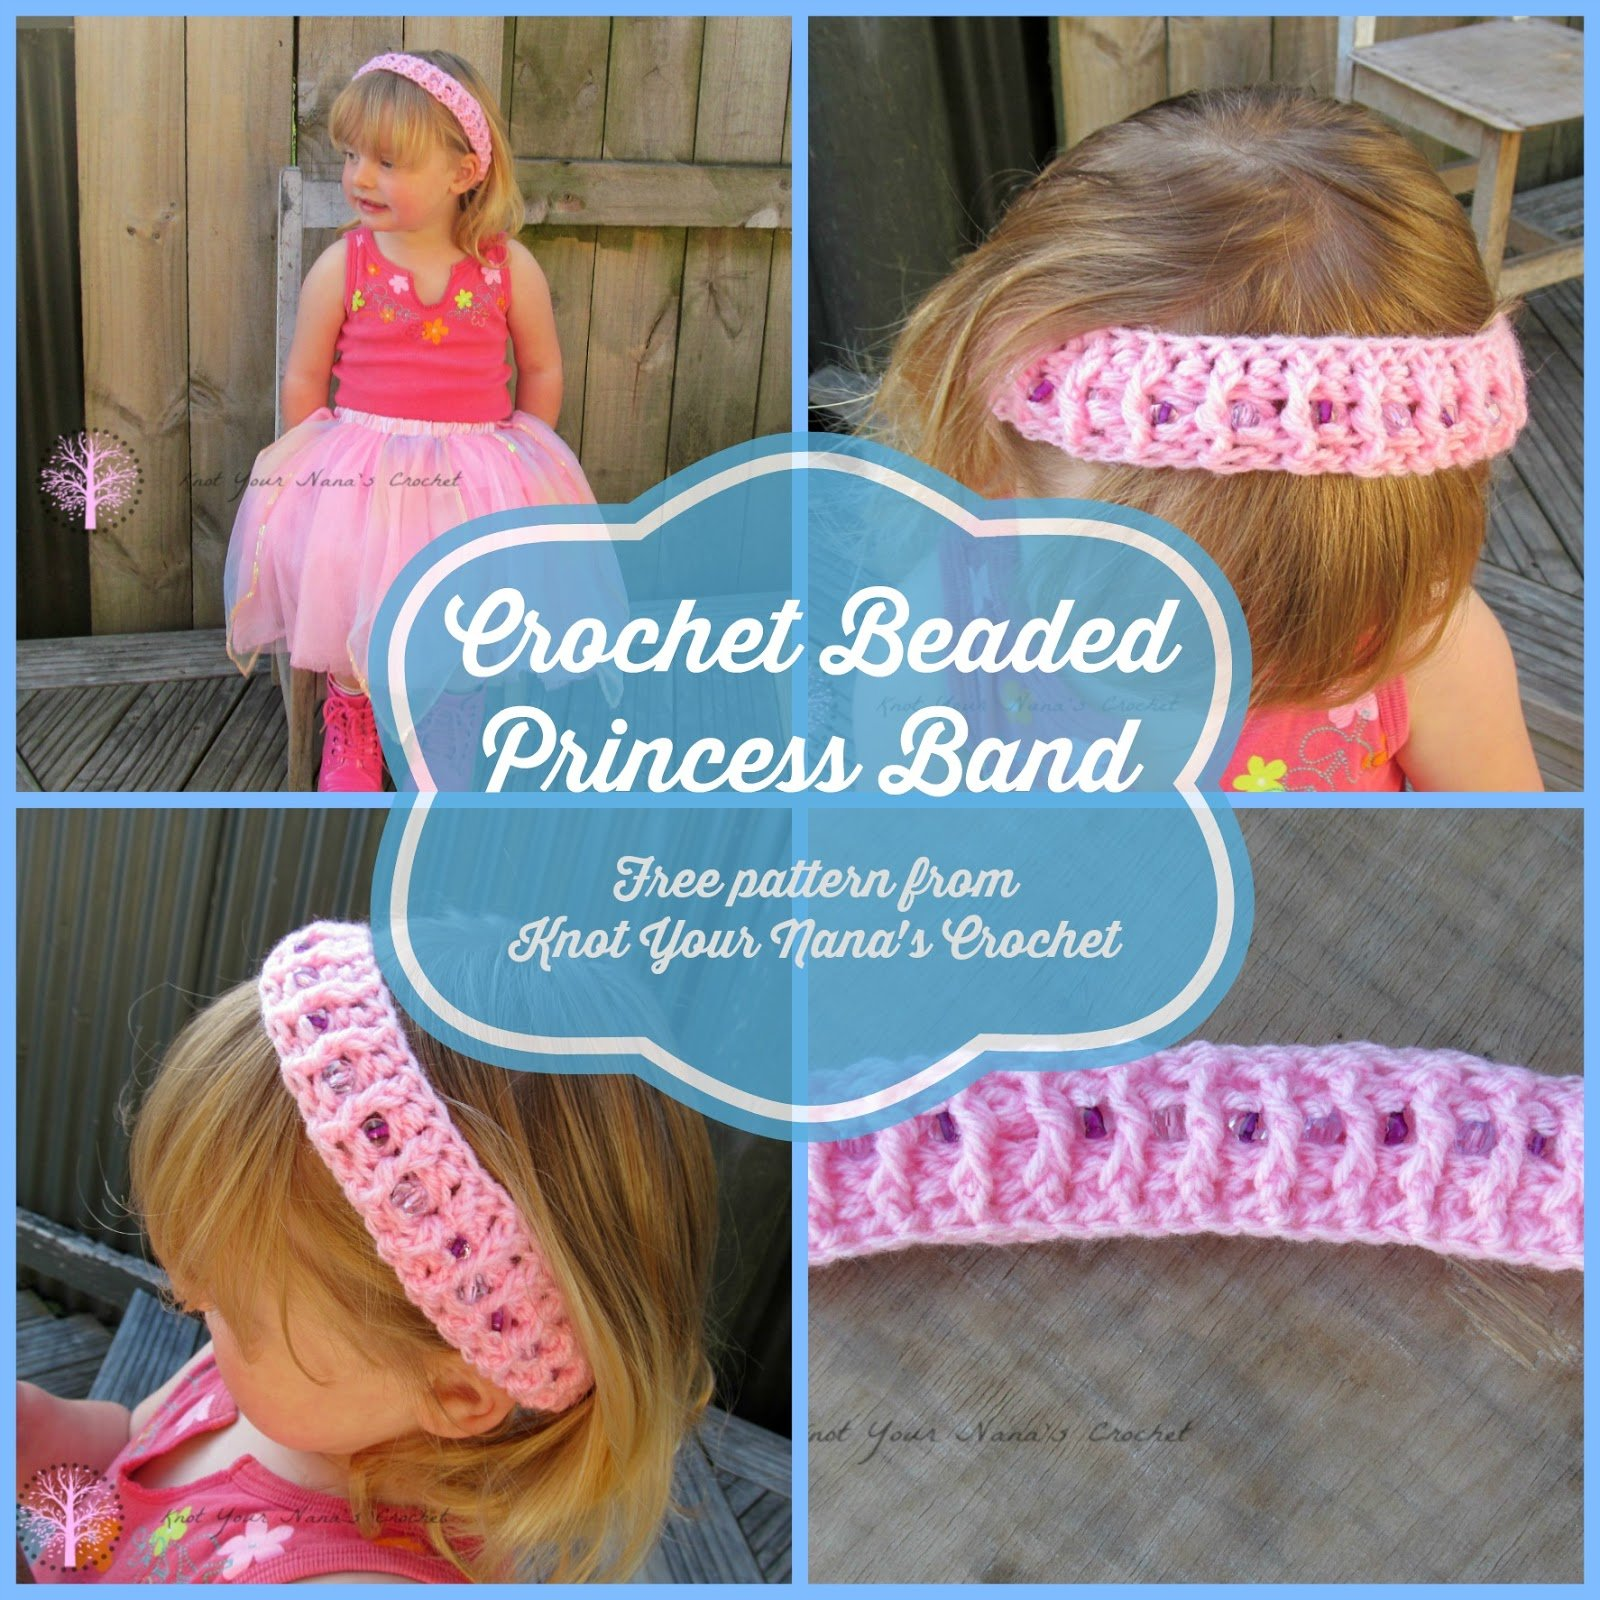 Crochet Beaded Princess Band by Knot Your Nana's Crochet